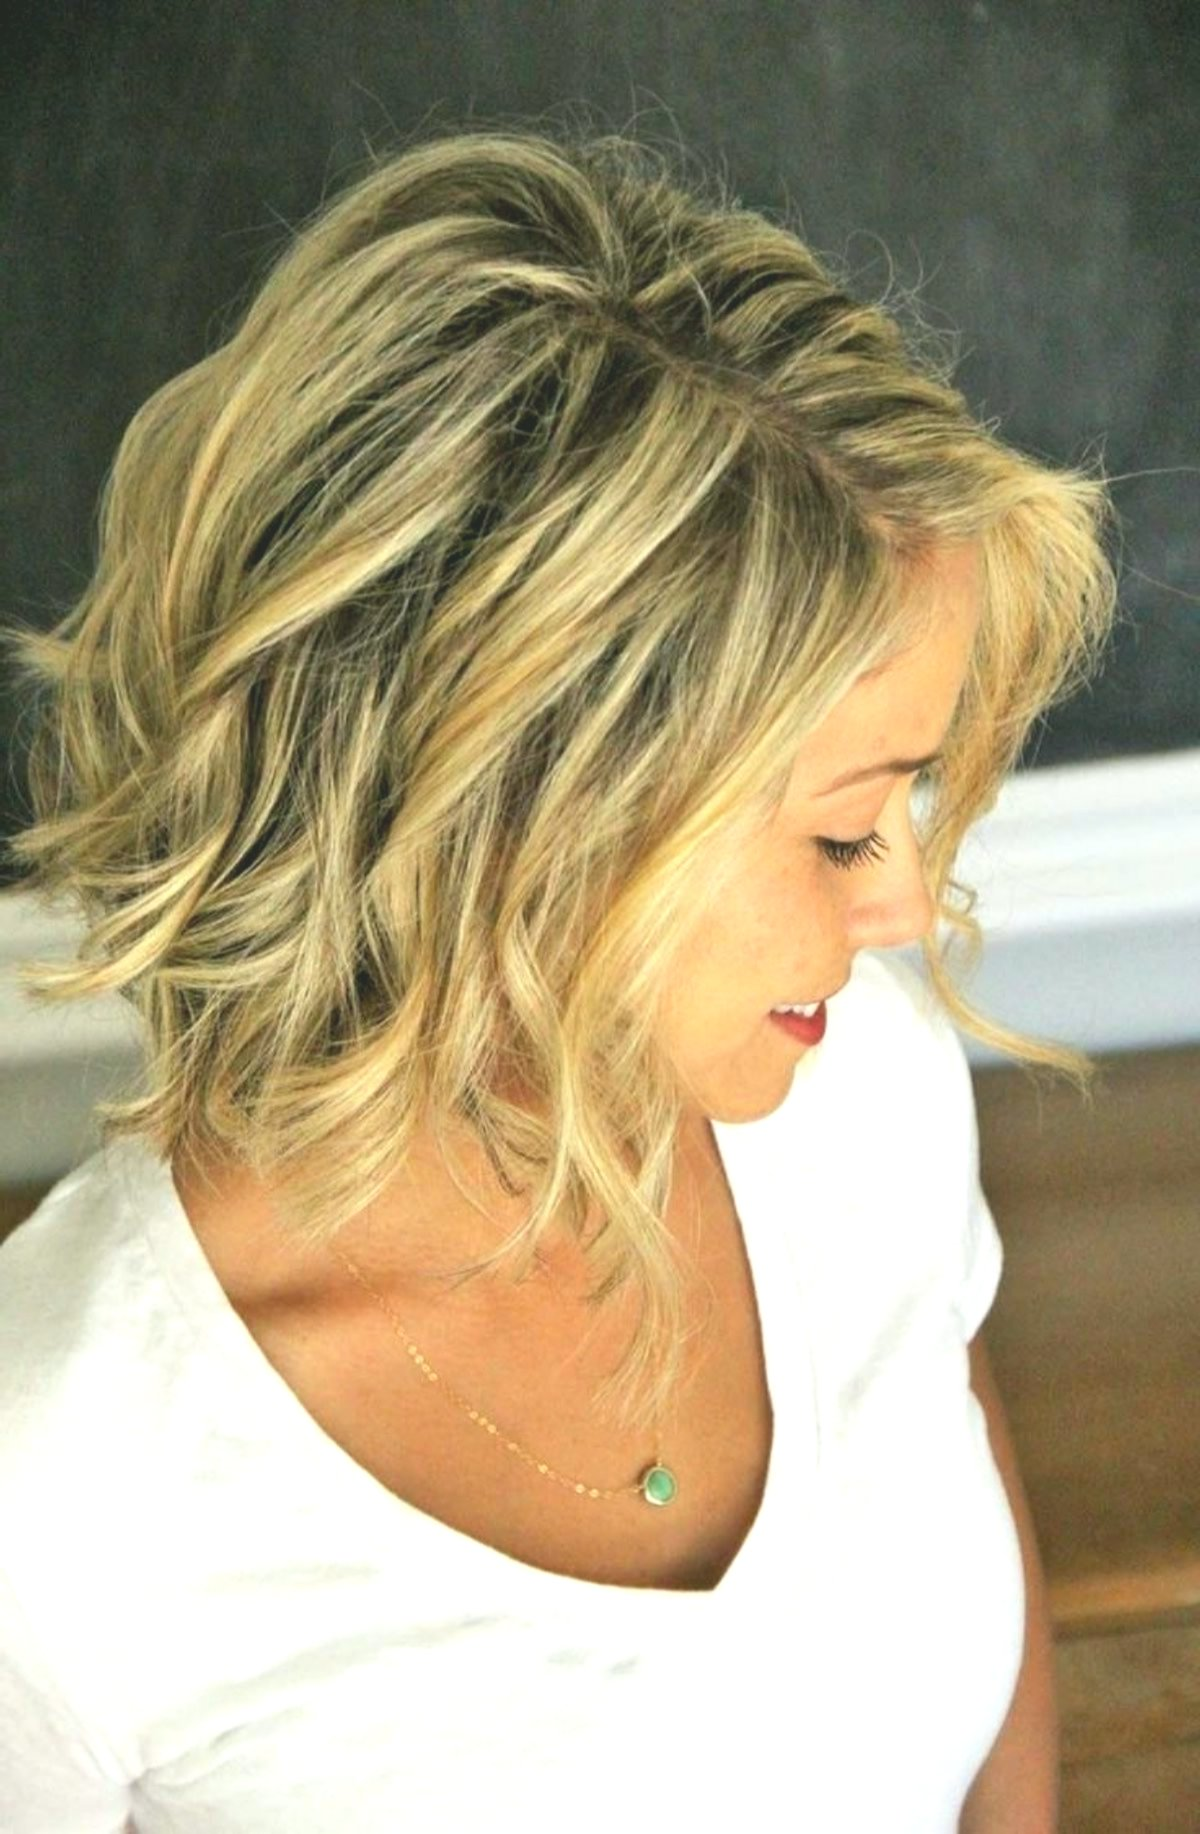 finest curls hairstyles short build layout-Superb Curls Hairstyles Short Ideas